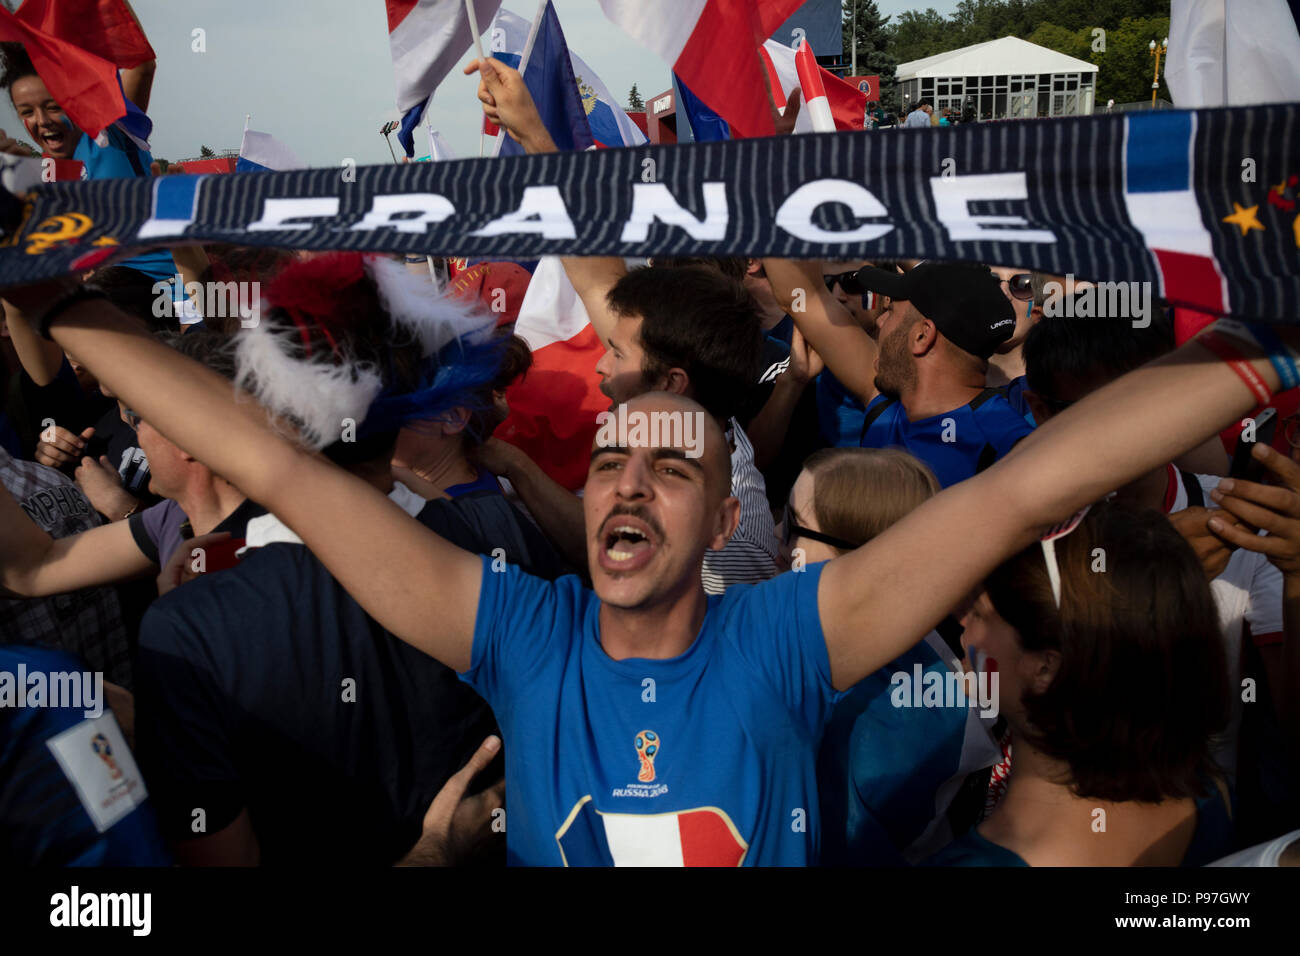 Moscow, Russia. 15th, July, 2018. French football fans support national team on Fan festival of Moscow during the World Cup 2018 FIFA, Final game, France vs. Croatia in Moscow's stadium luzhniki, Russia - Stock Image